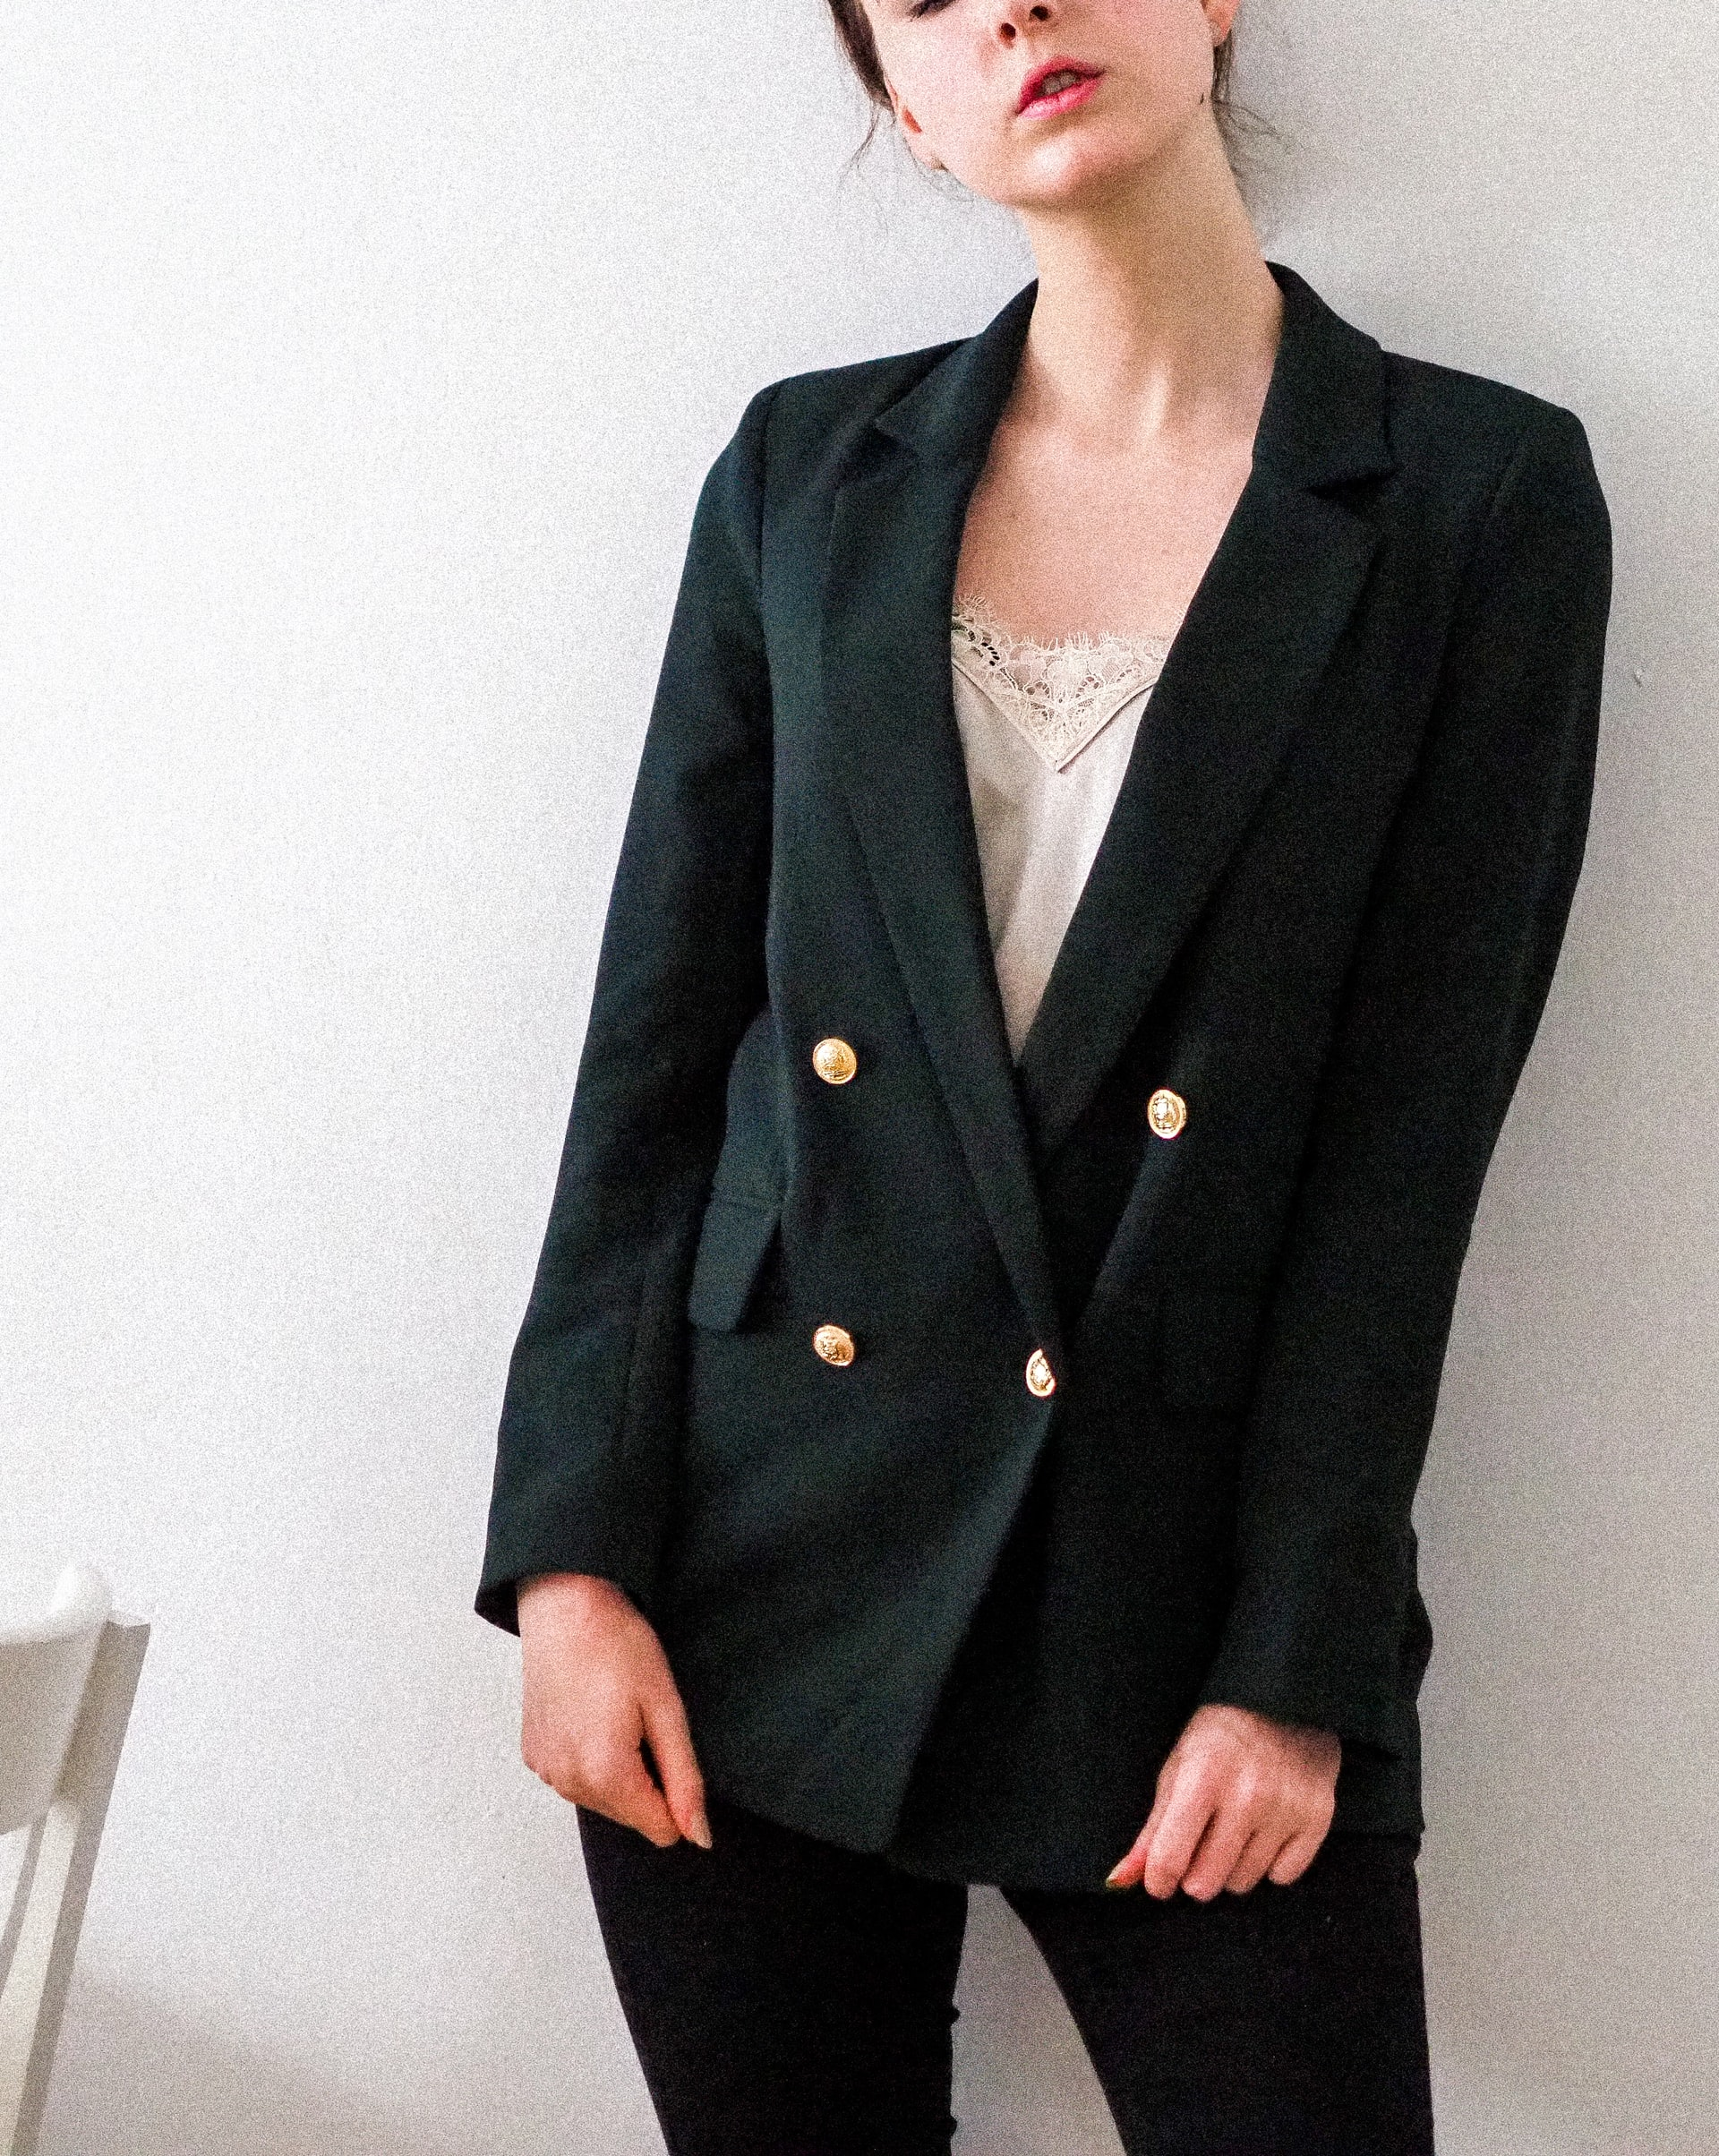 woman wearing black blazer